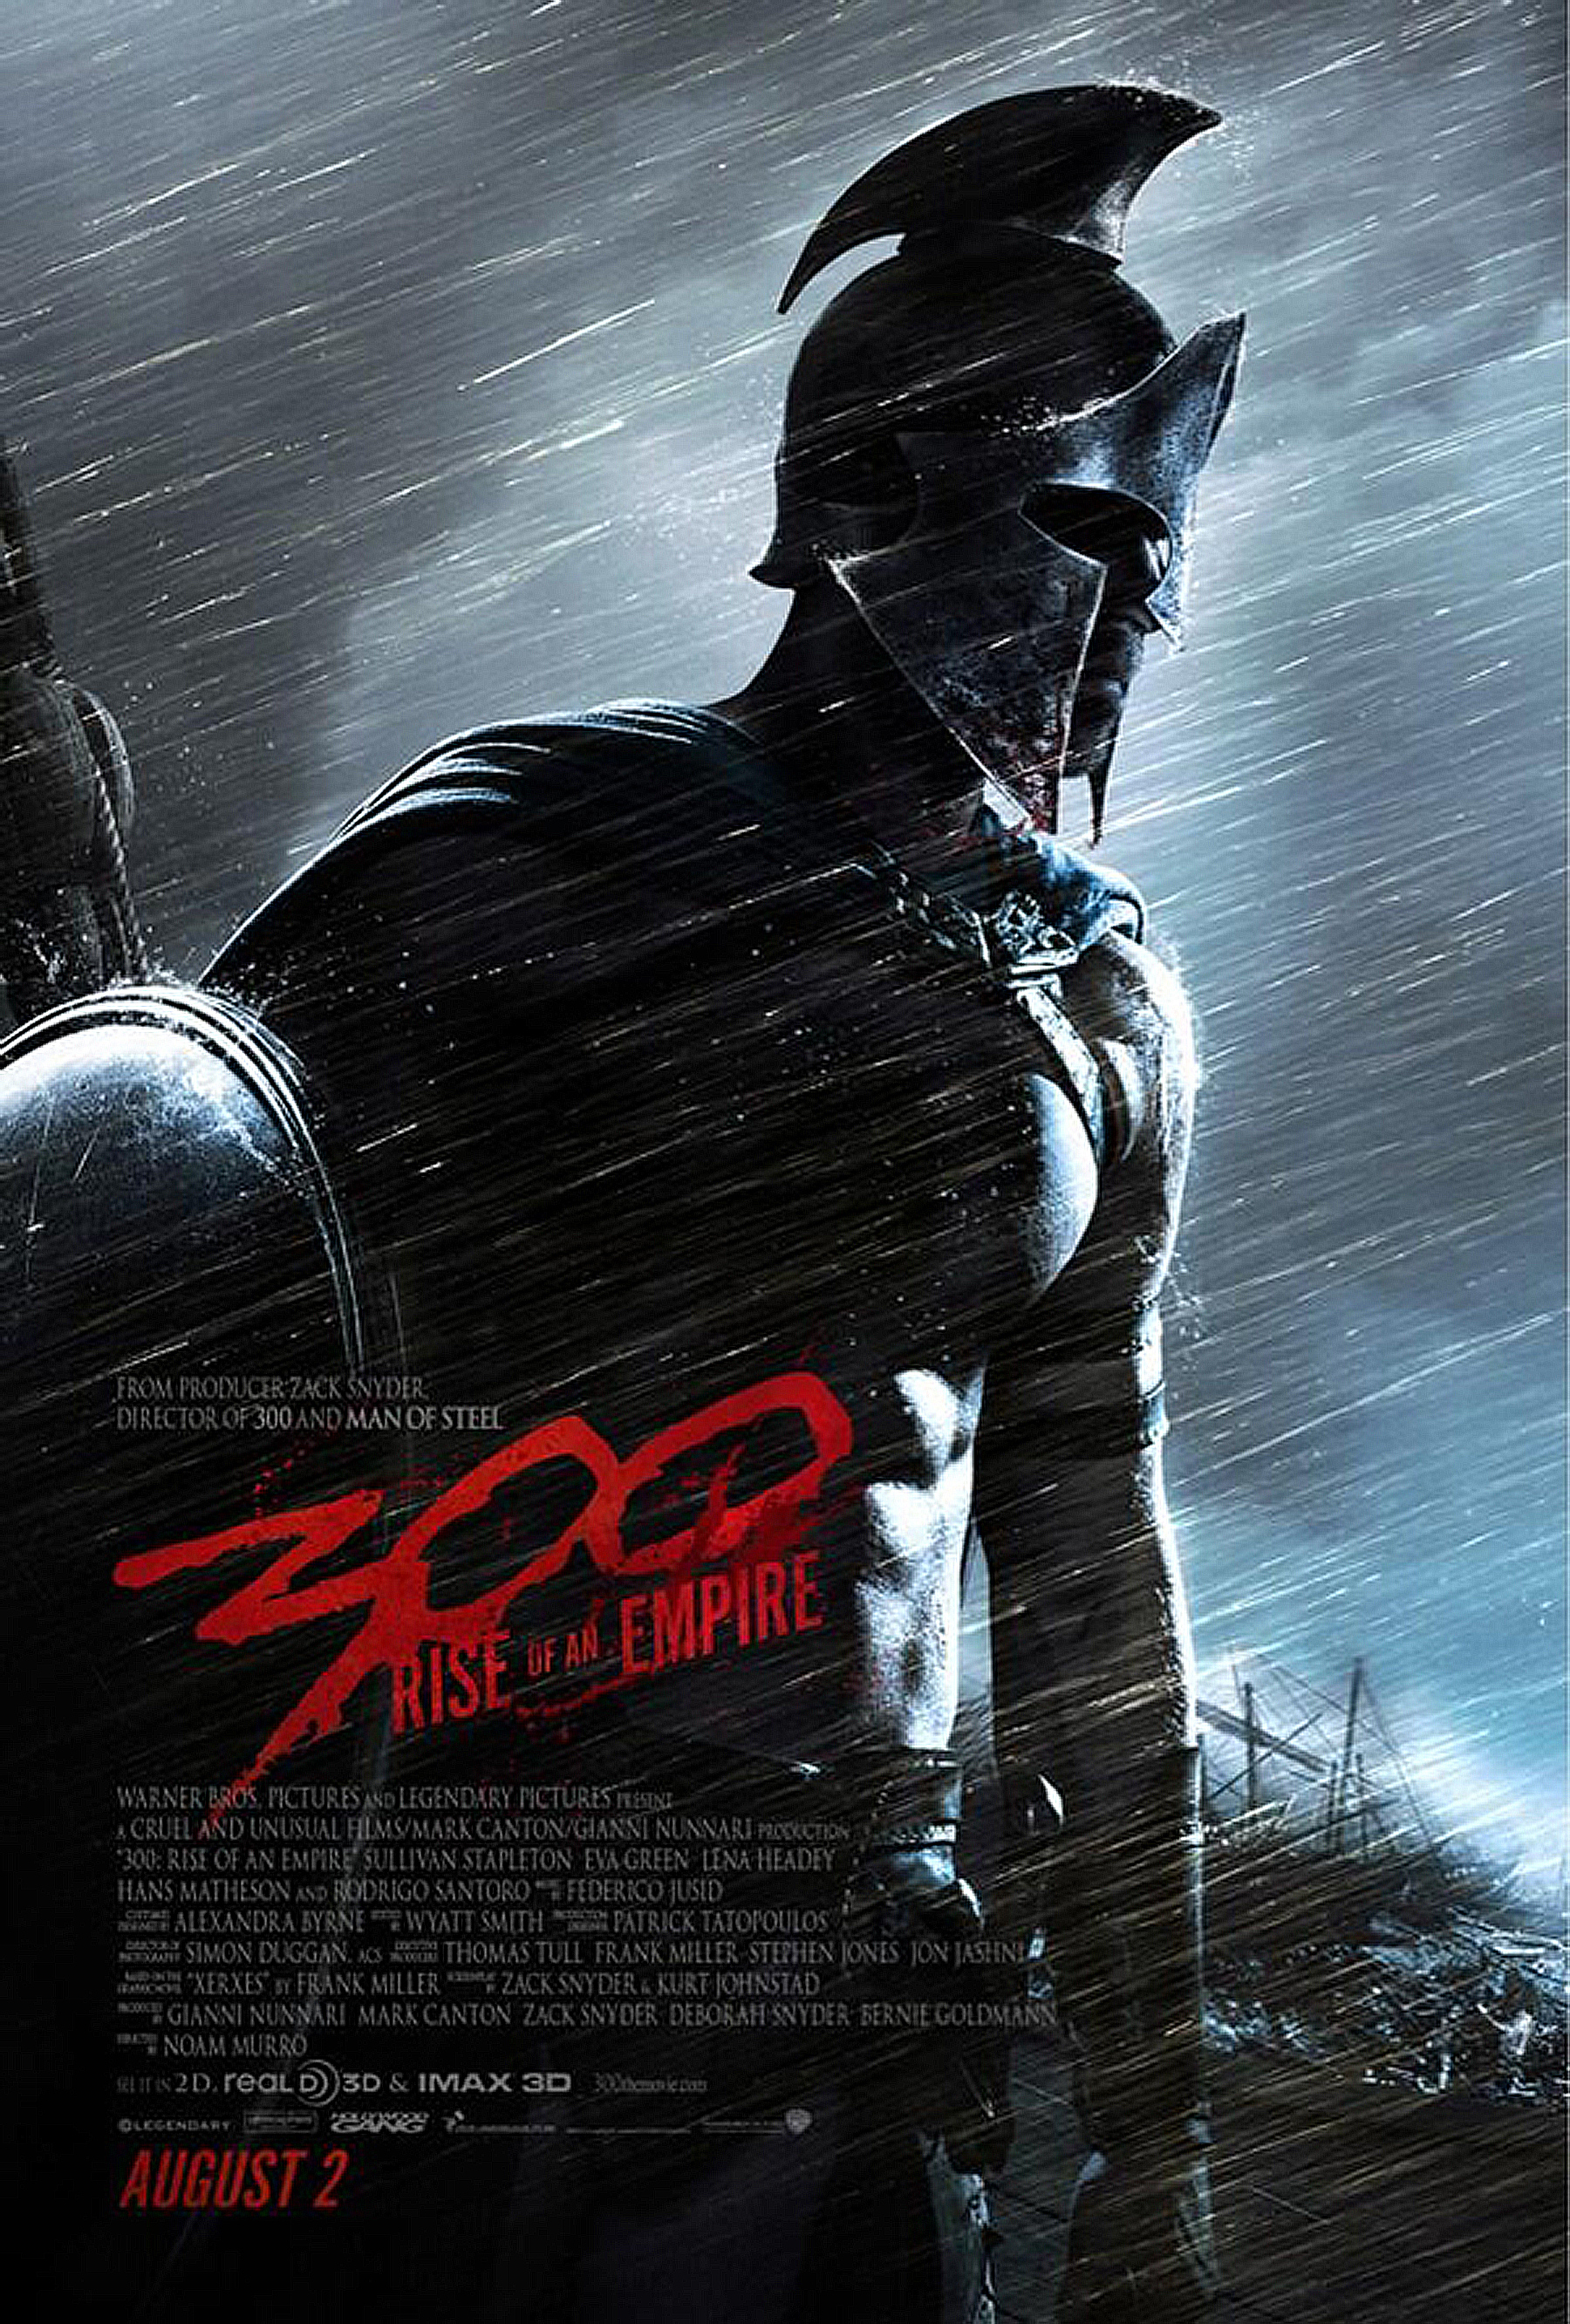 300-Rise-of-an-Empire-300-Sequel-Poster-300-34264453-1800-2664.jpg